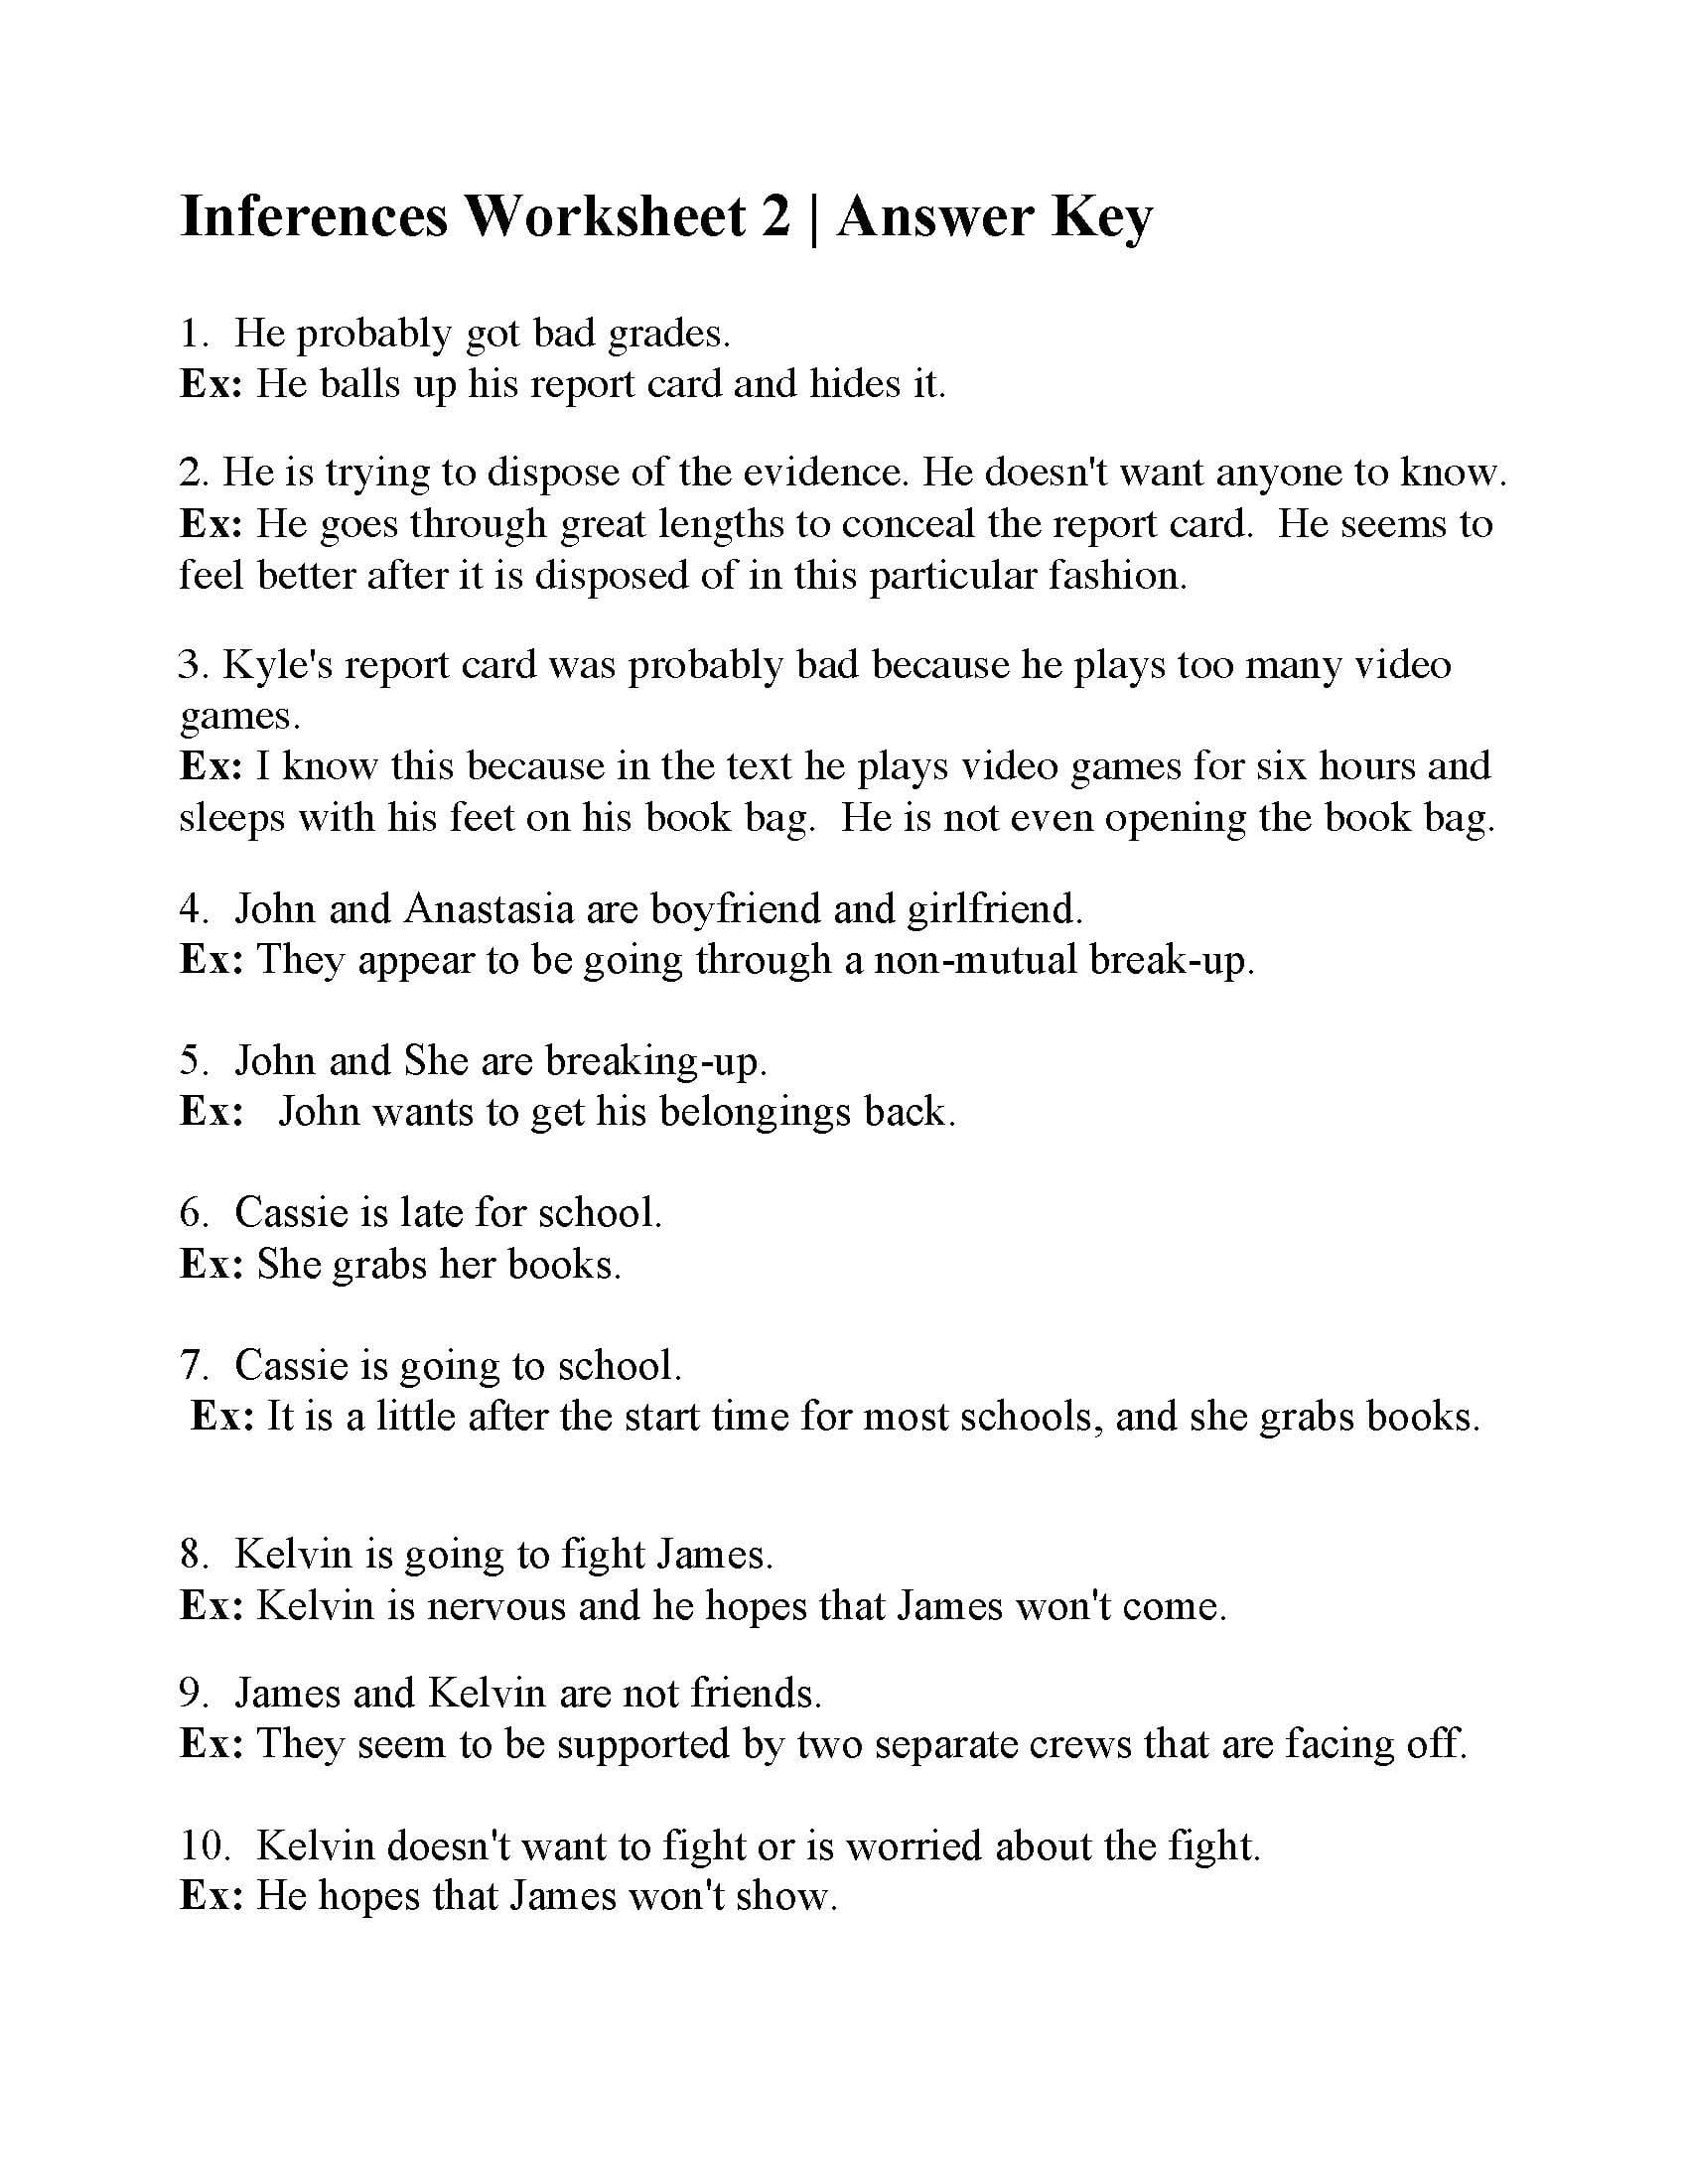 Inferences Worksheet 2  Answers Together With Inferences Worksheet 2 Answers